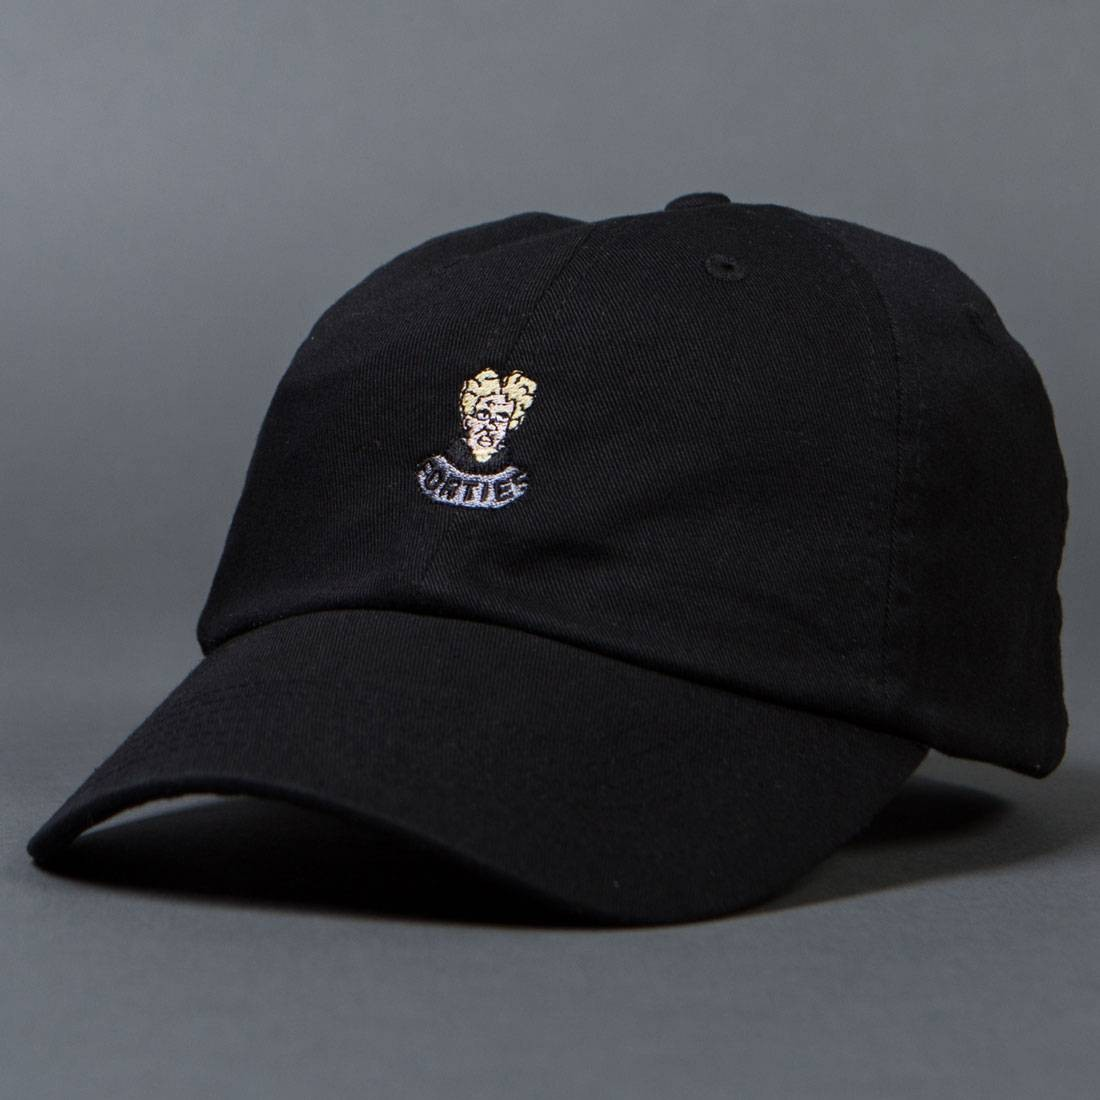 40s and Shorties High Fashion Deconstructed Hat (black)